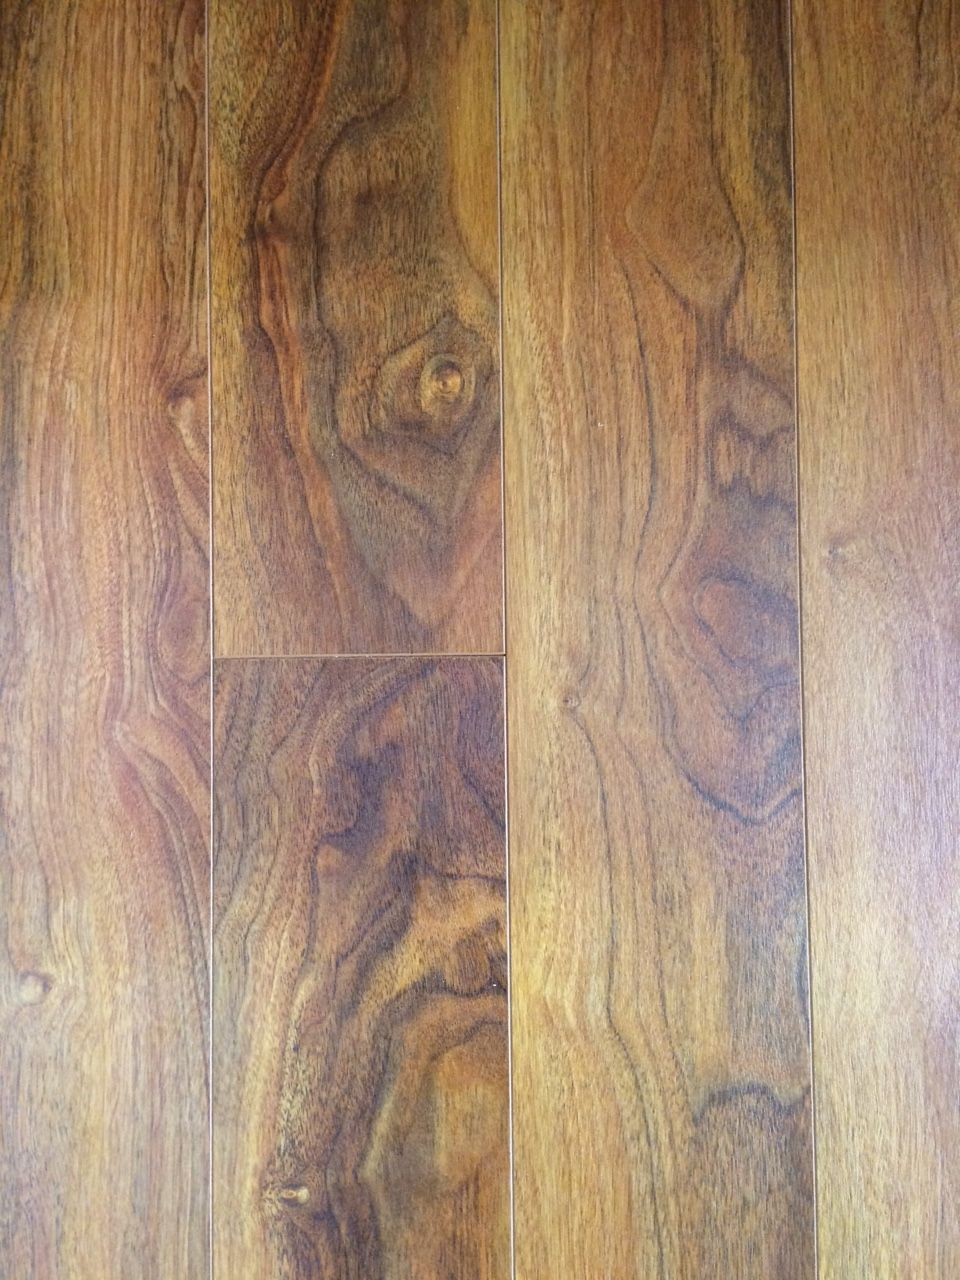 Native Timber Laminate Floors In Perth Wa Trevors Carpets